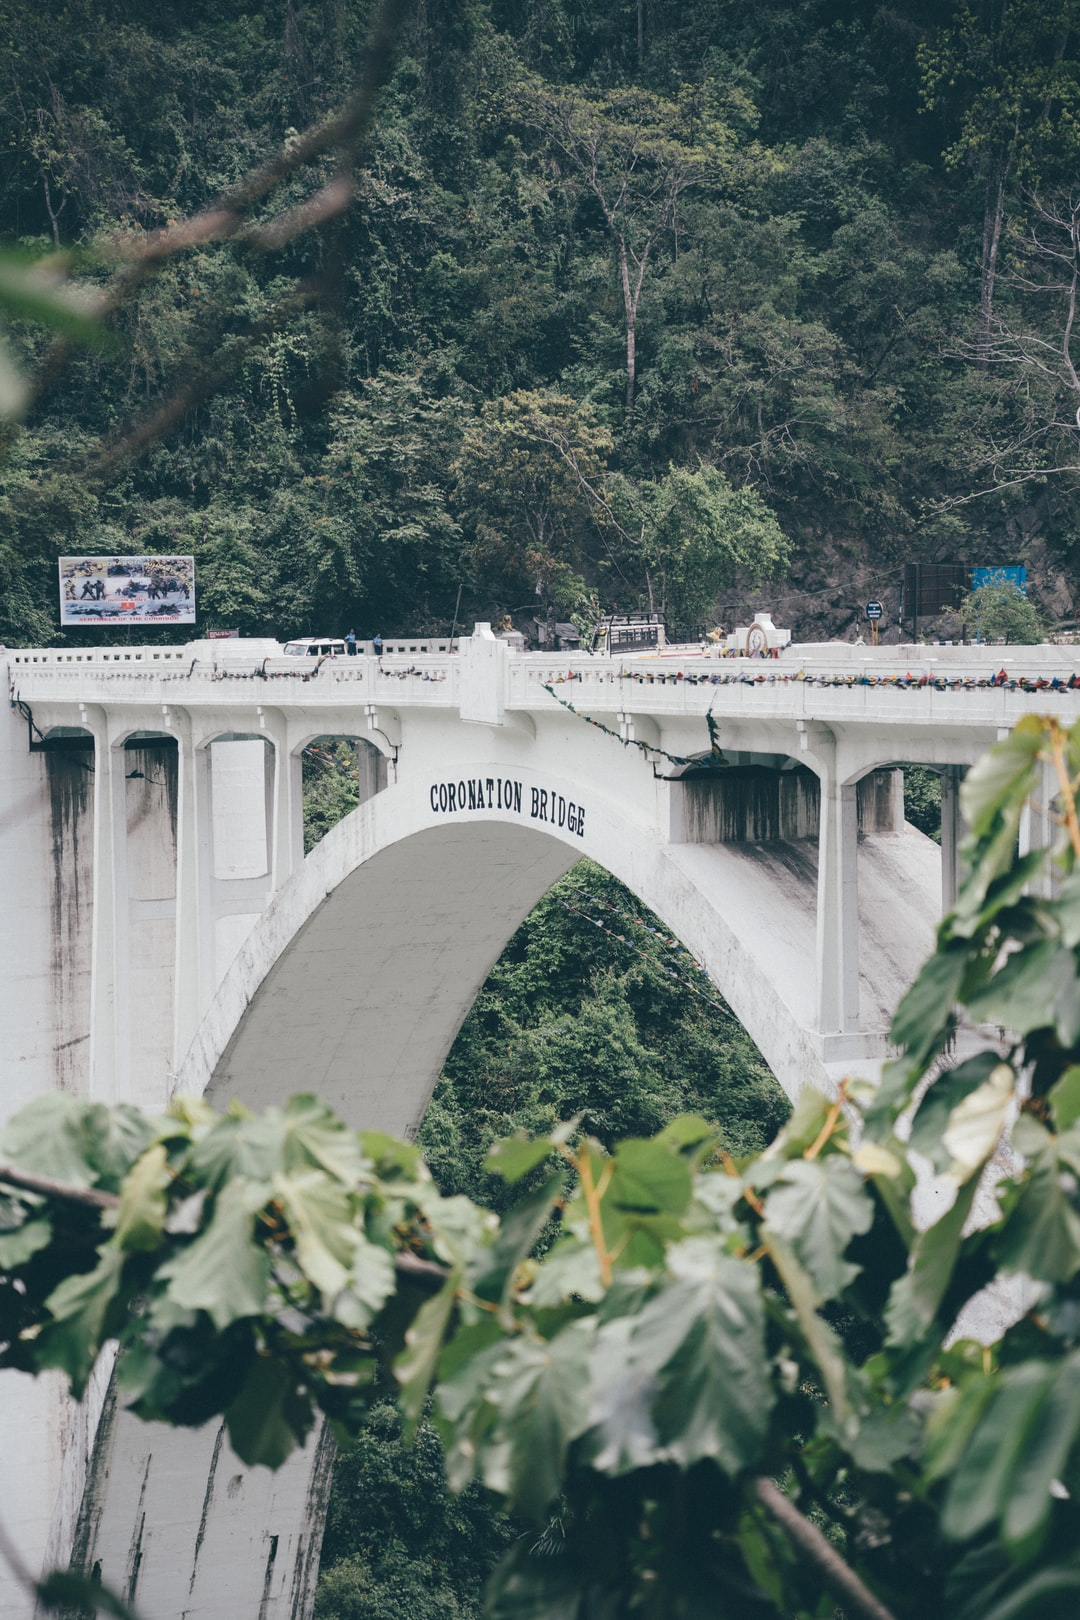 The Coronation Bridge, also known as the Sevoke Bridge, in Darjeeling district of West Bengal, India, spans across the Teesta River, connecting the districts of Darjeeling and Jalpaiguri.   Built in 1941 to commemorate the coronation of King George VI and Queen Elizabeth.   It's also called baghpool by the locals as the bridge as tigers on both its sides. A beautiful piece of colonial architecture.